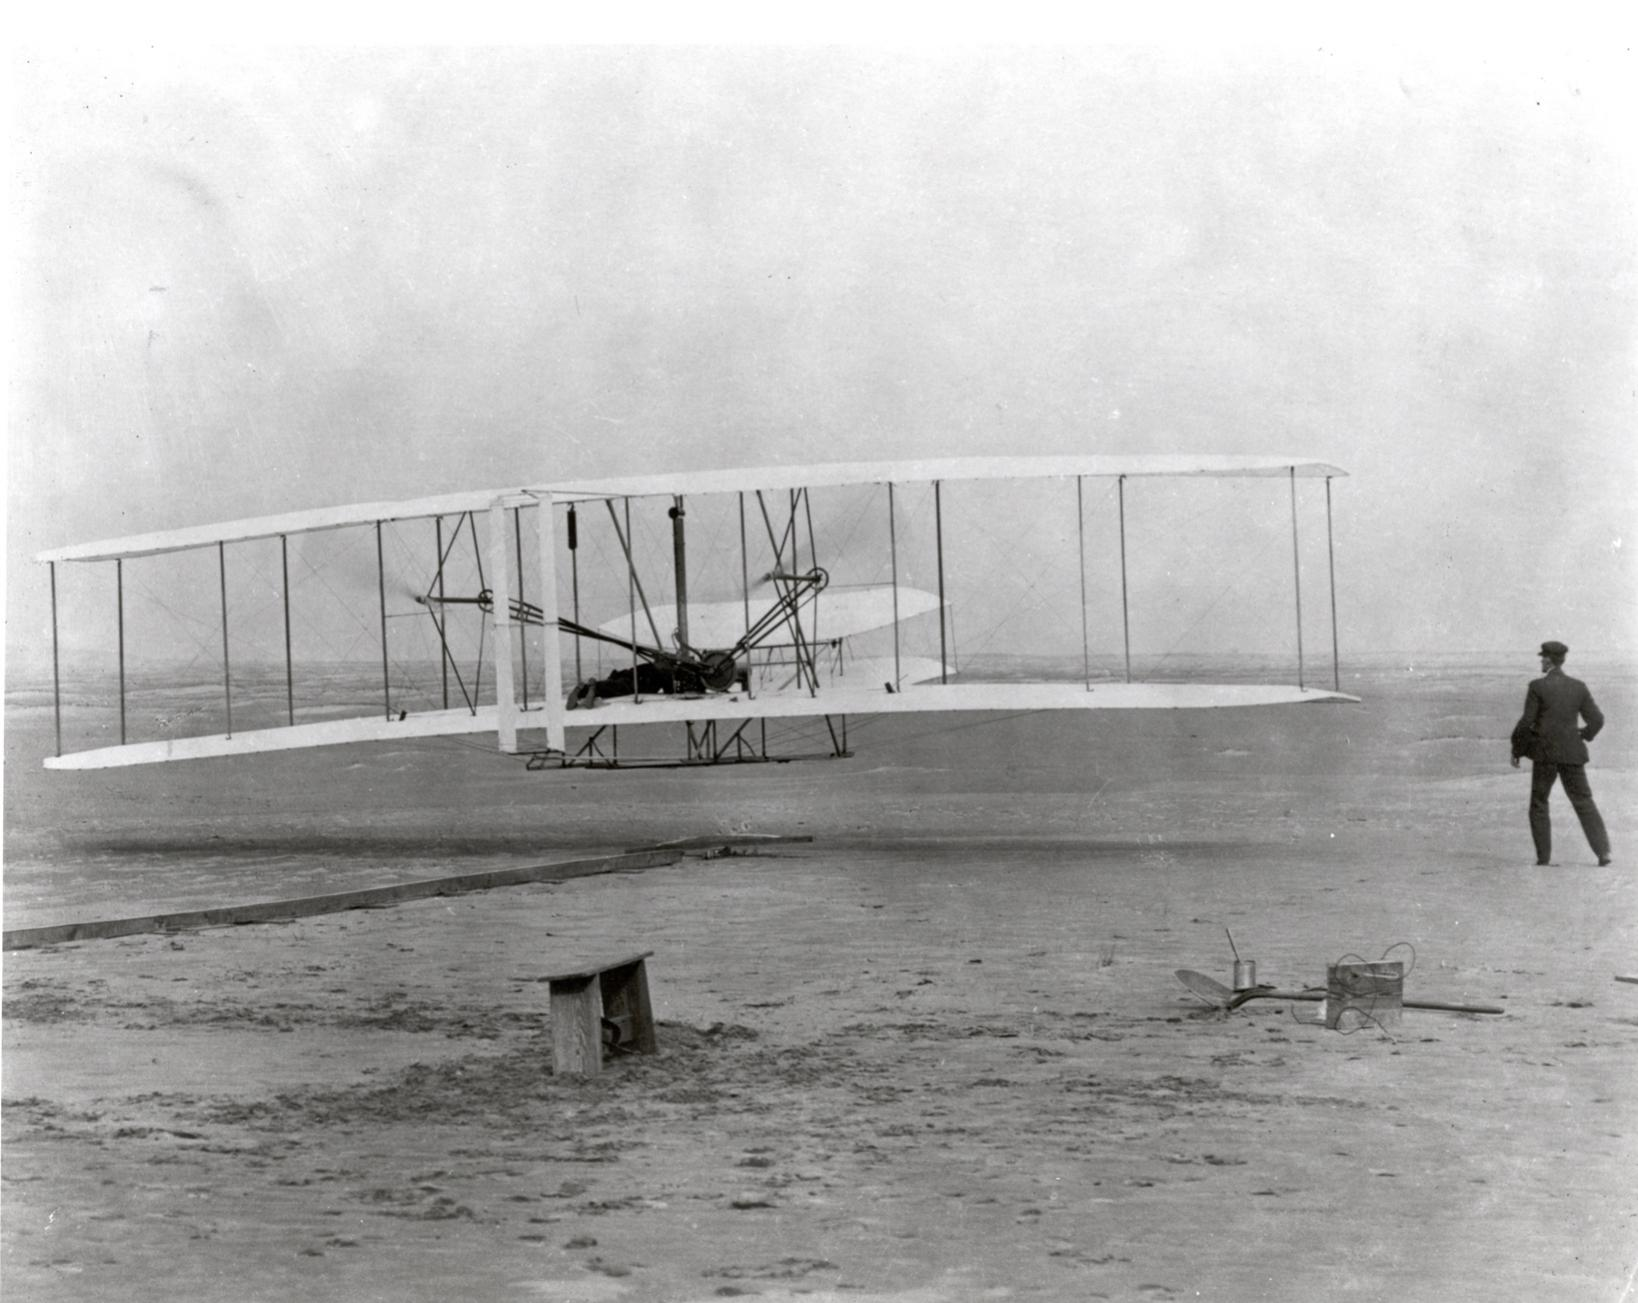 Naziv: The_Wright_Brothers_First_Heavier-than-air_Flight_-_GPN-2002-000128.jpg, pregleda: 197, veličina: 202,2 KB